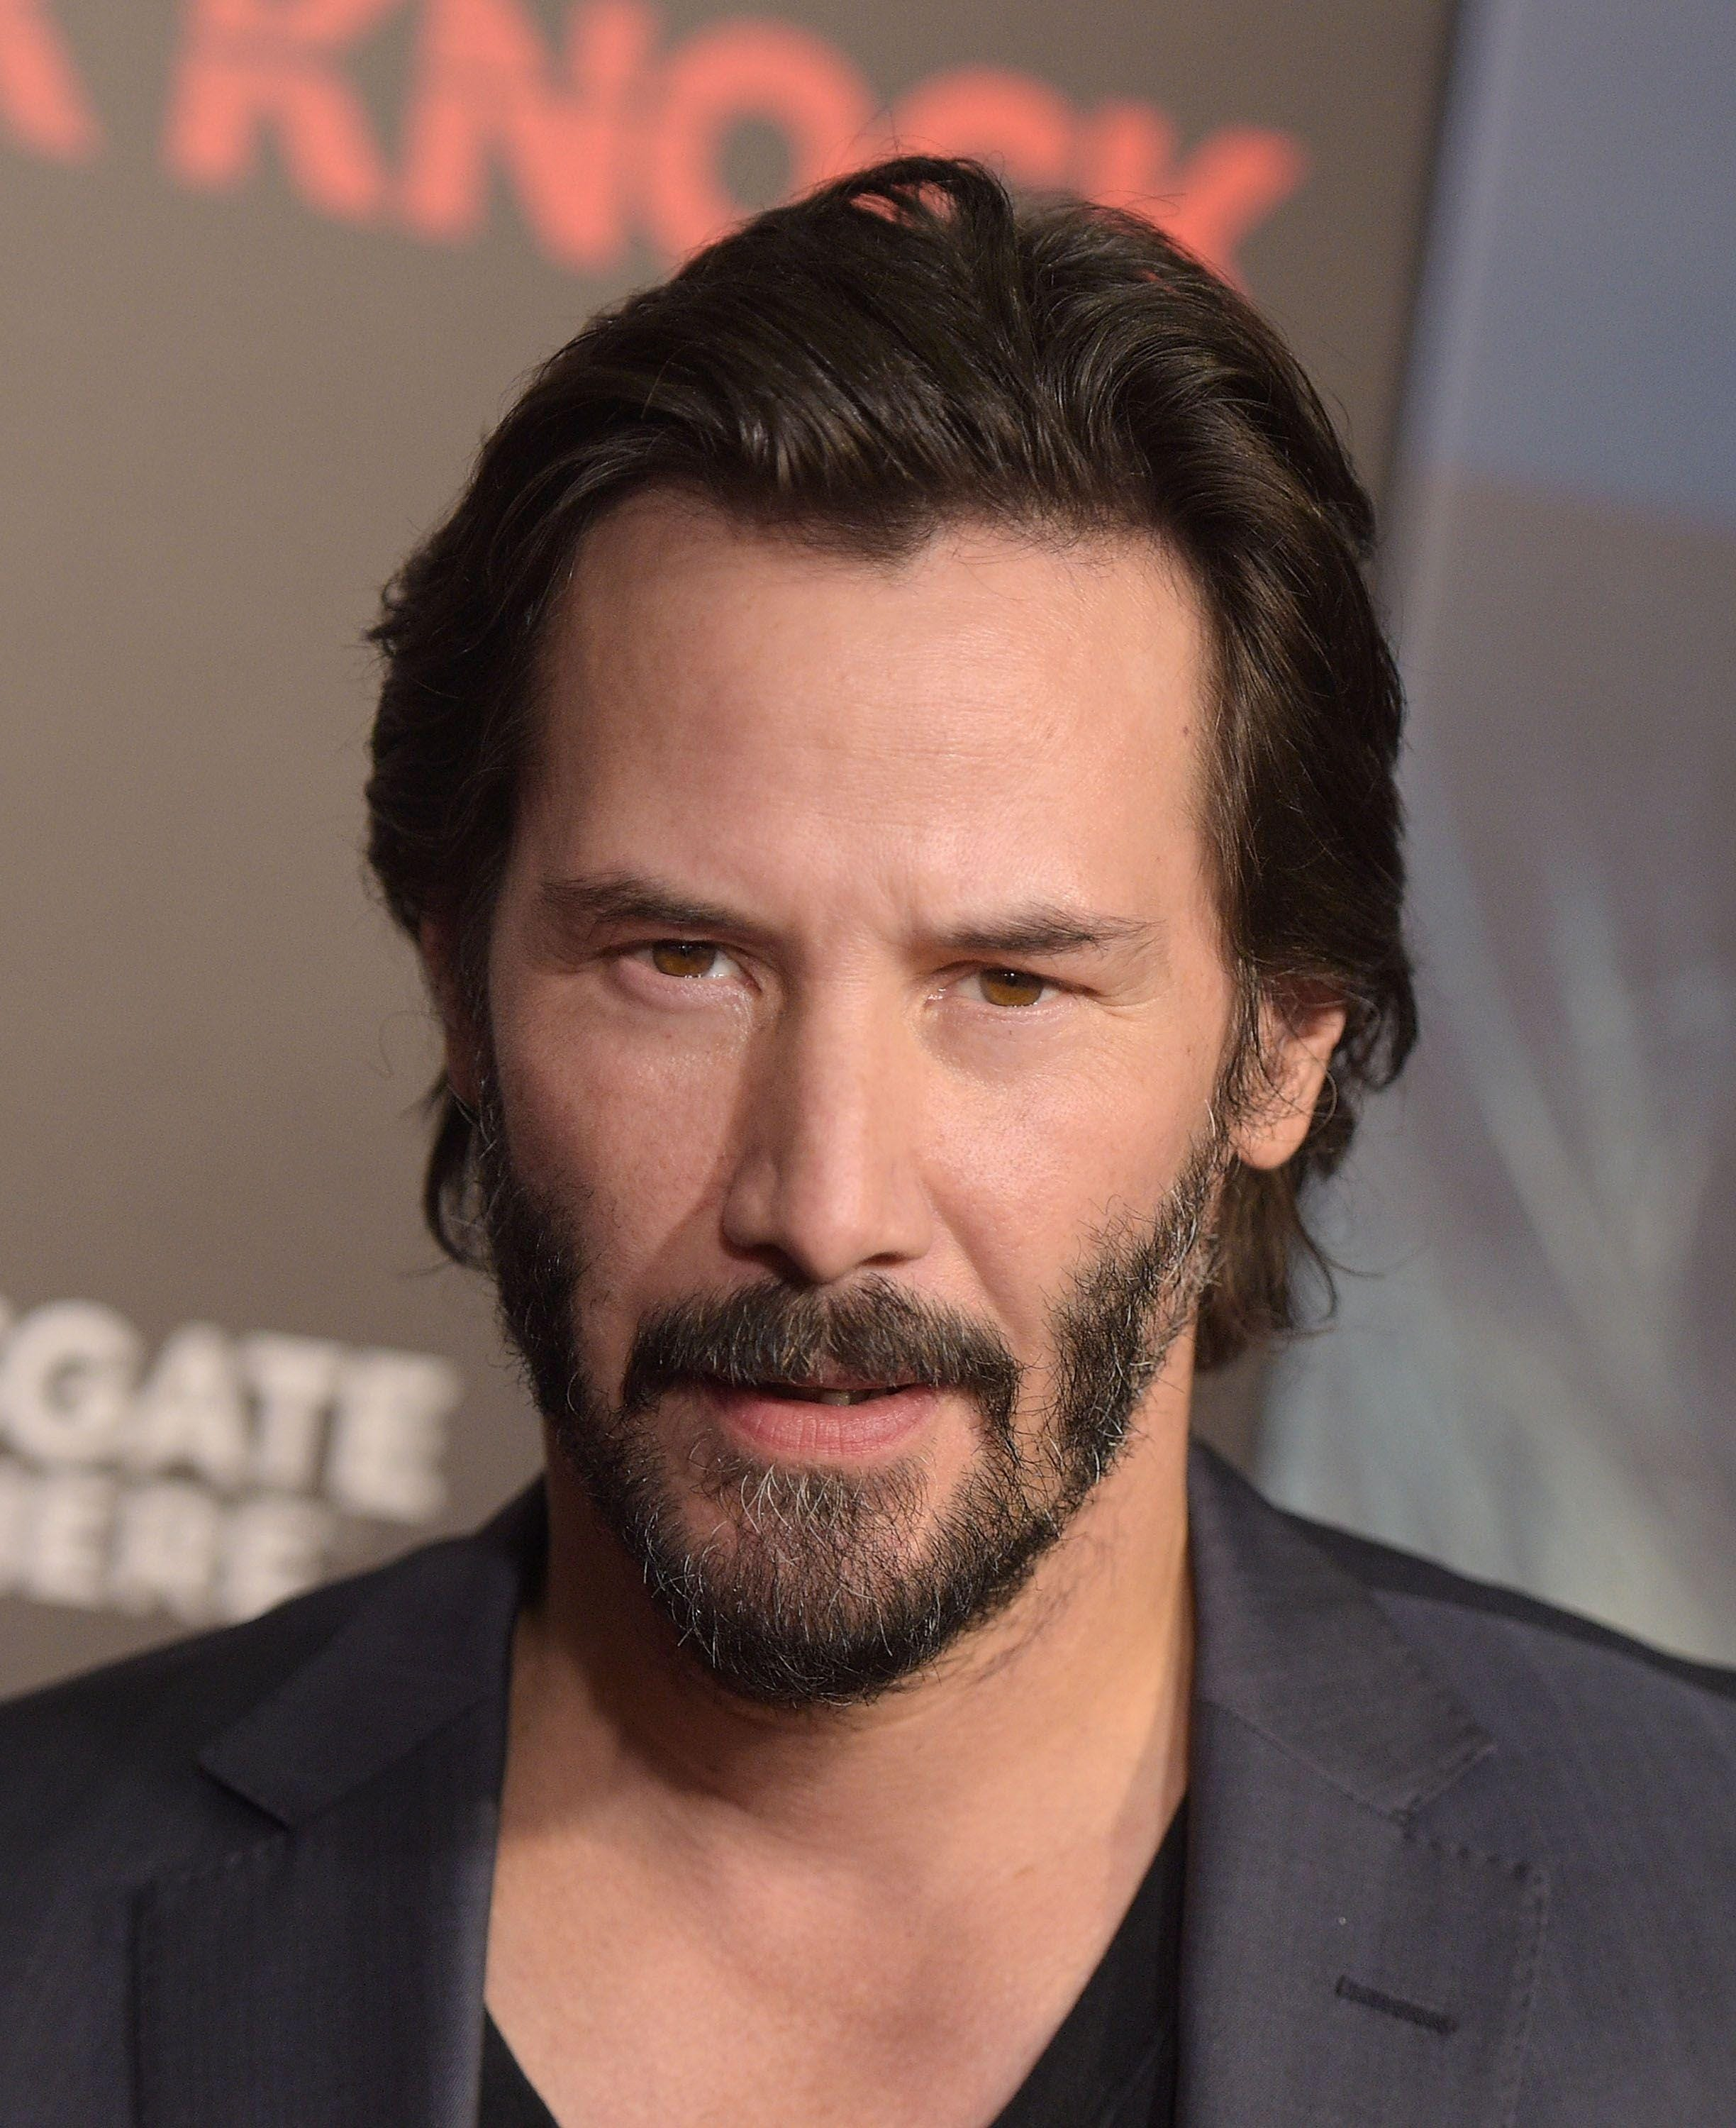 Keanu Reeves Rankings & Opinions